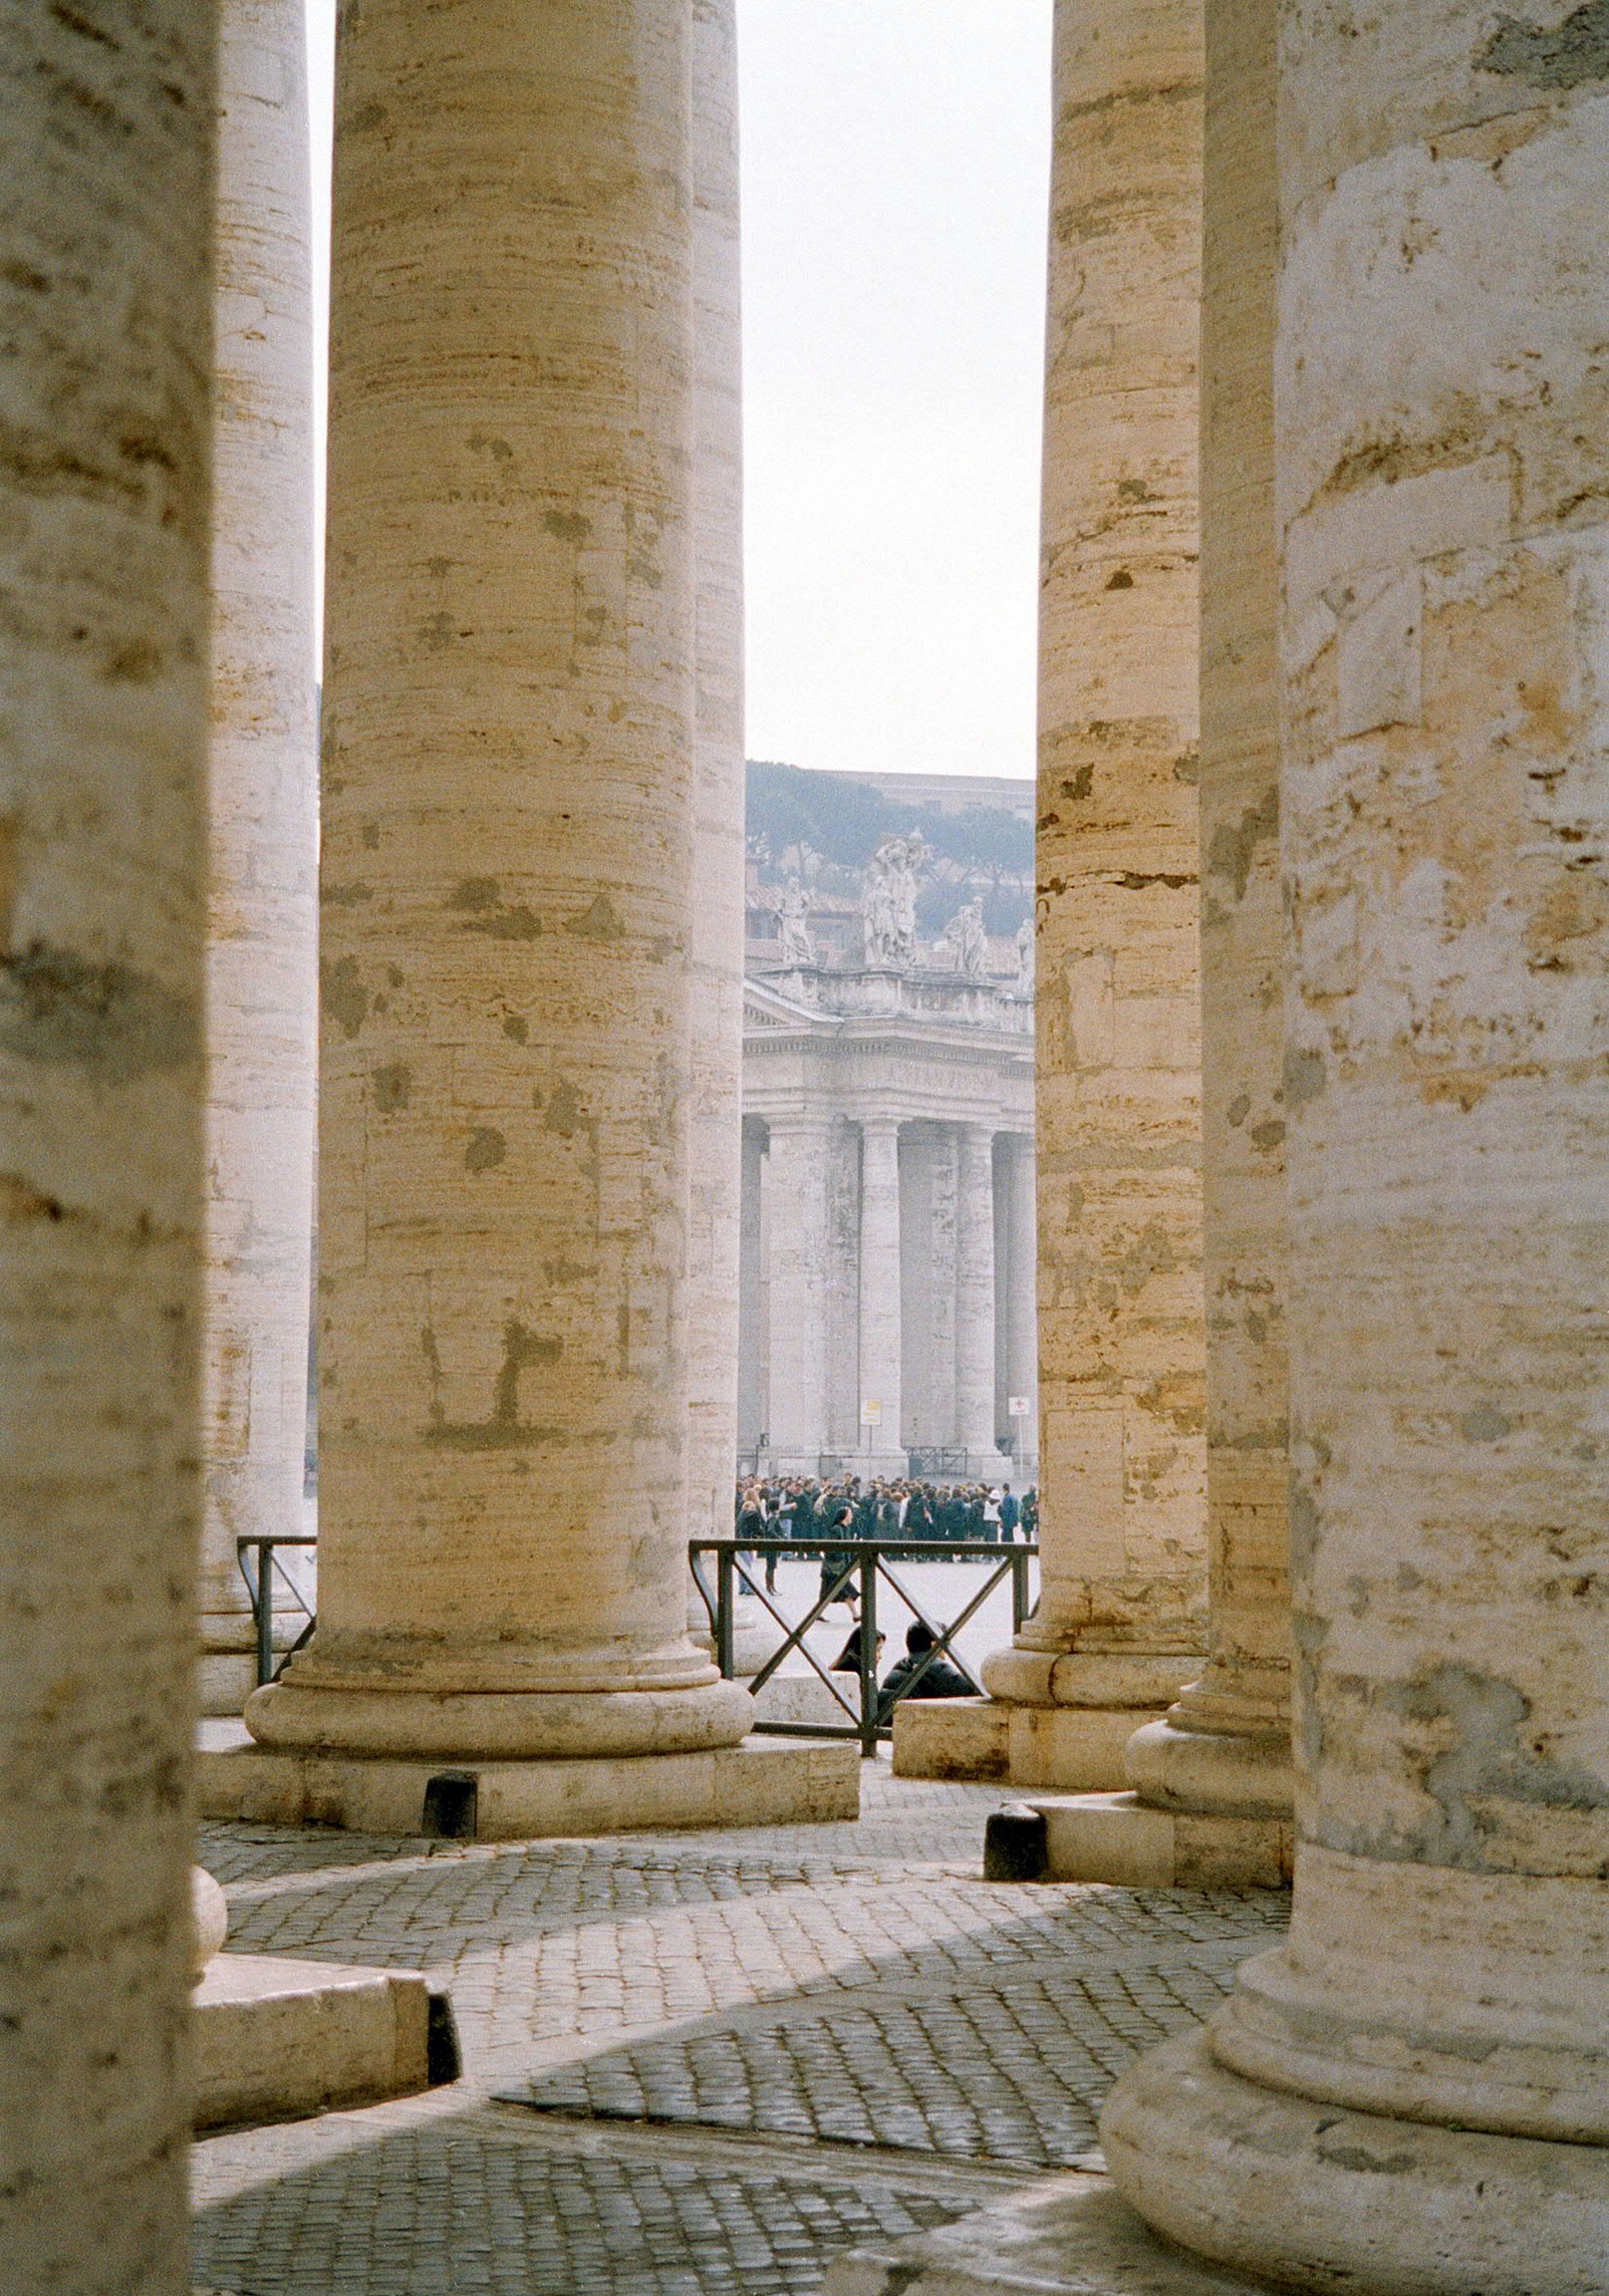 Colonnade, St Peter's